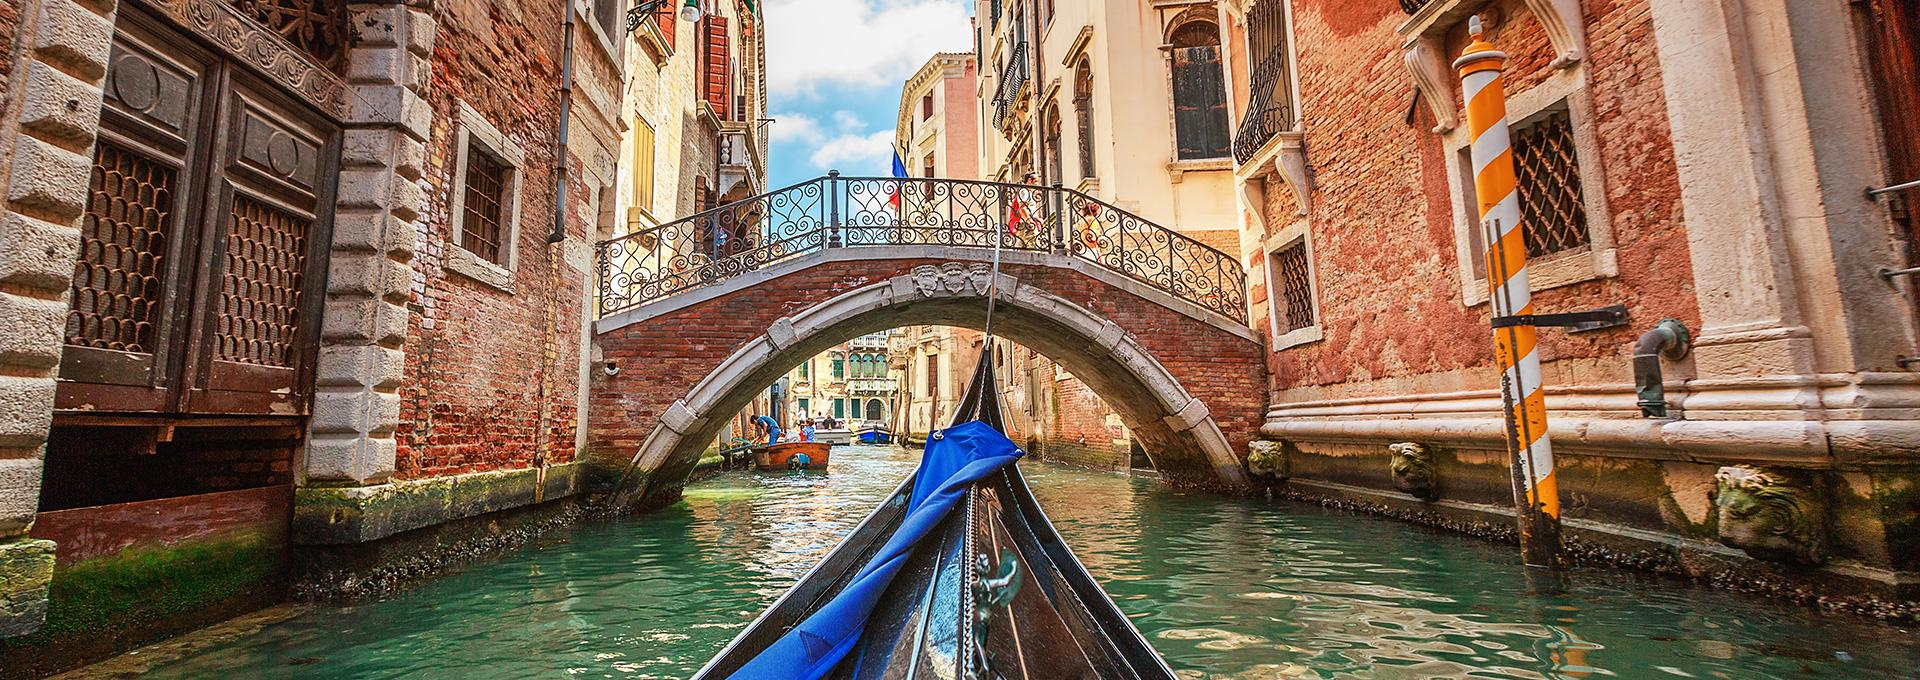 view of a canal from a gondola in Venice, Italy